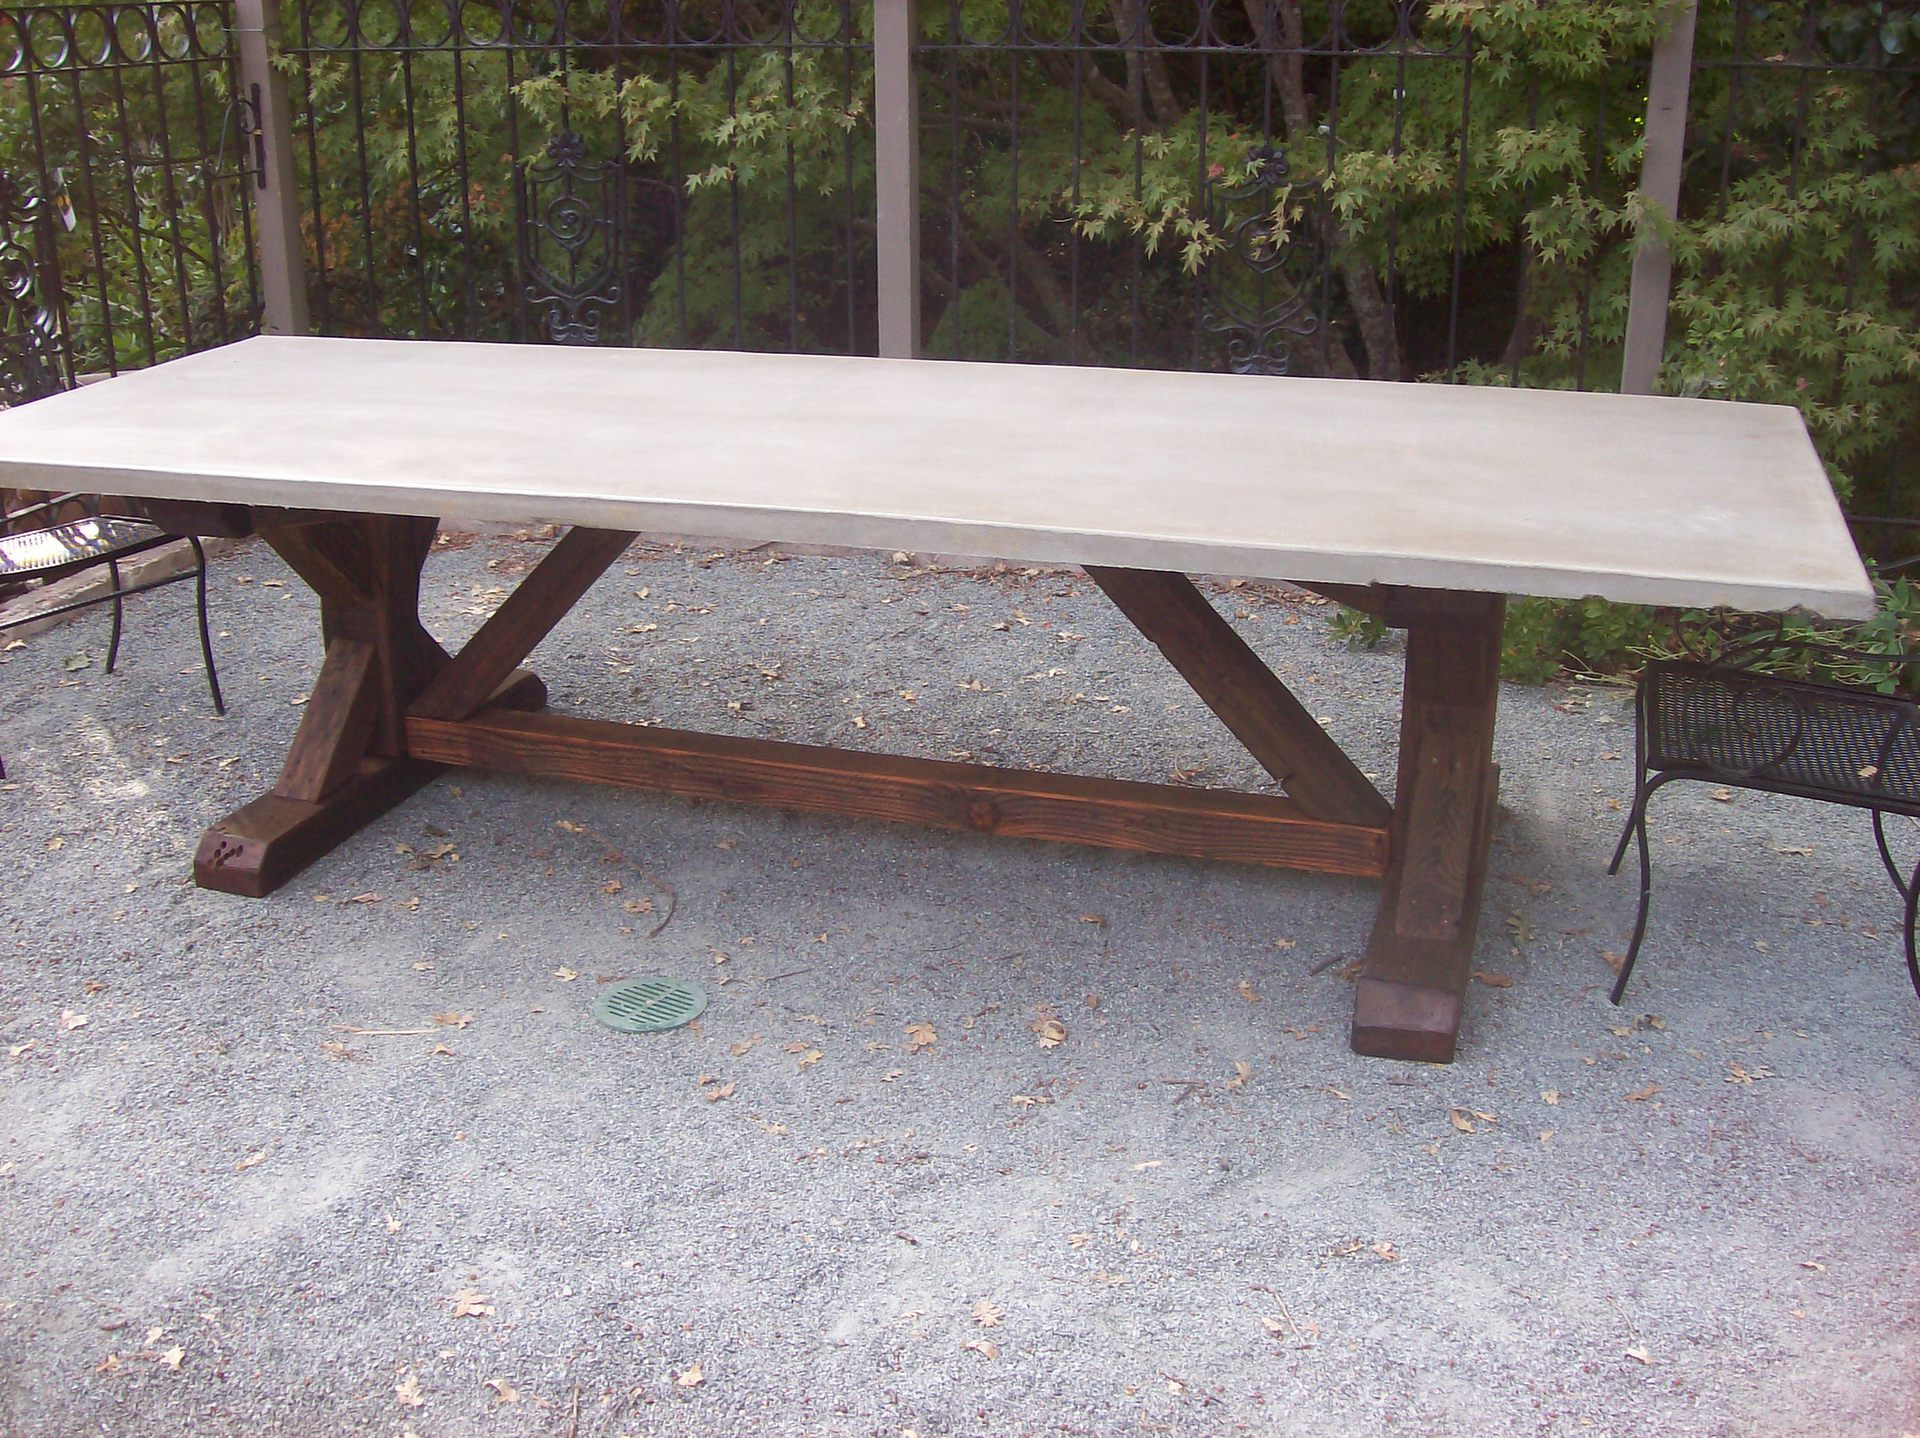 ... Amico Salvaged and Reclaimed Wood Furnishings | Concrete Top Table